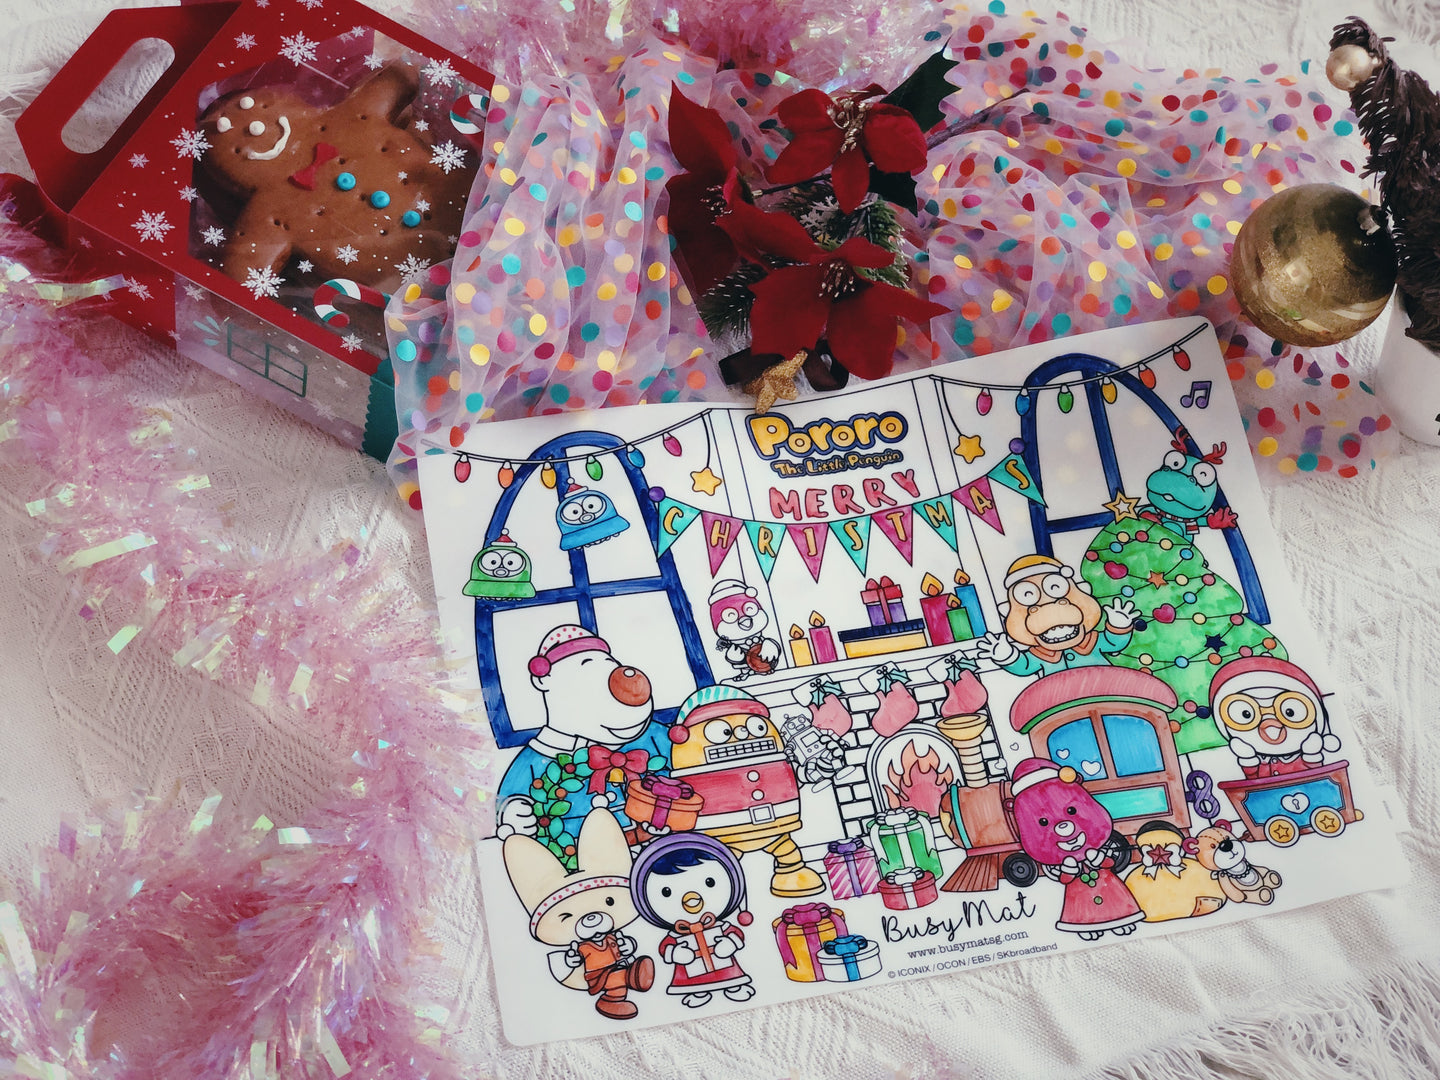 Busy Mat Premium Pororo Collaboration Series: Christmas at Home 🎄